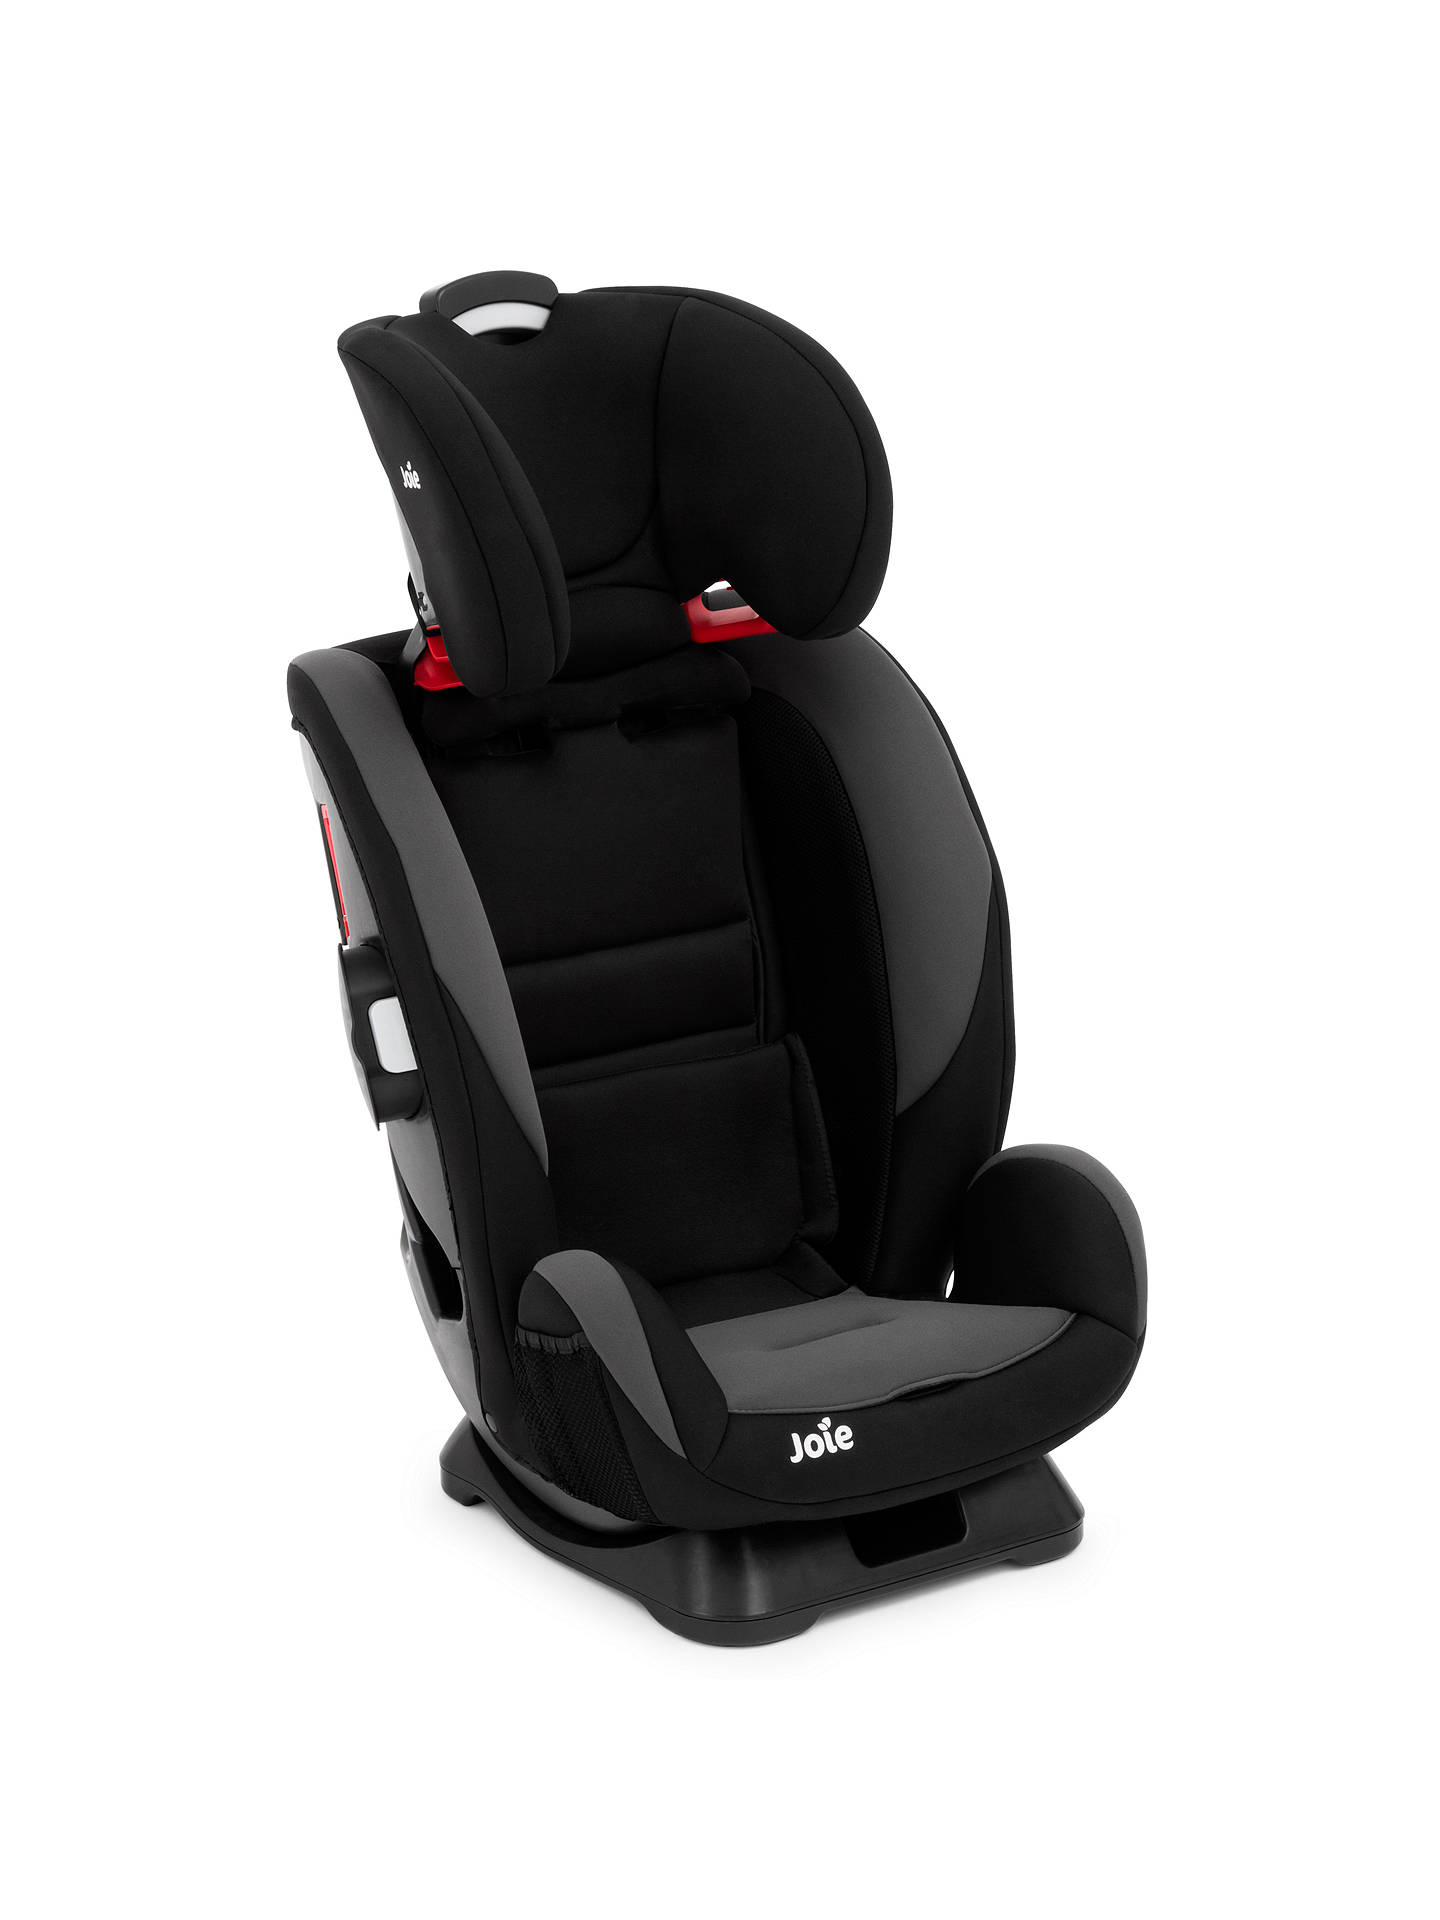 Joie Every Stage Group 0 1 2 3 Car Seat Two Tone Black At John